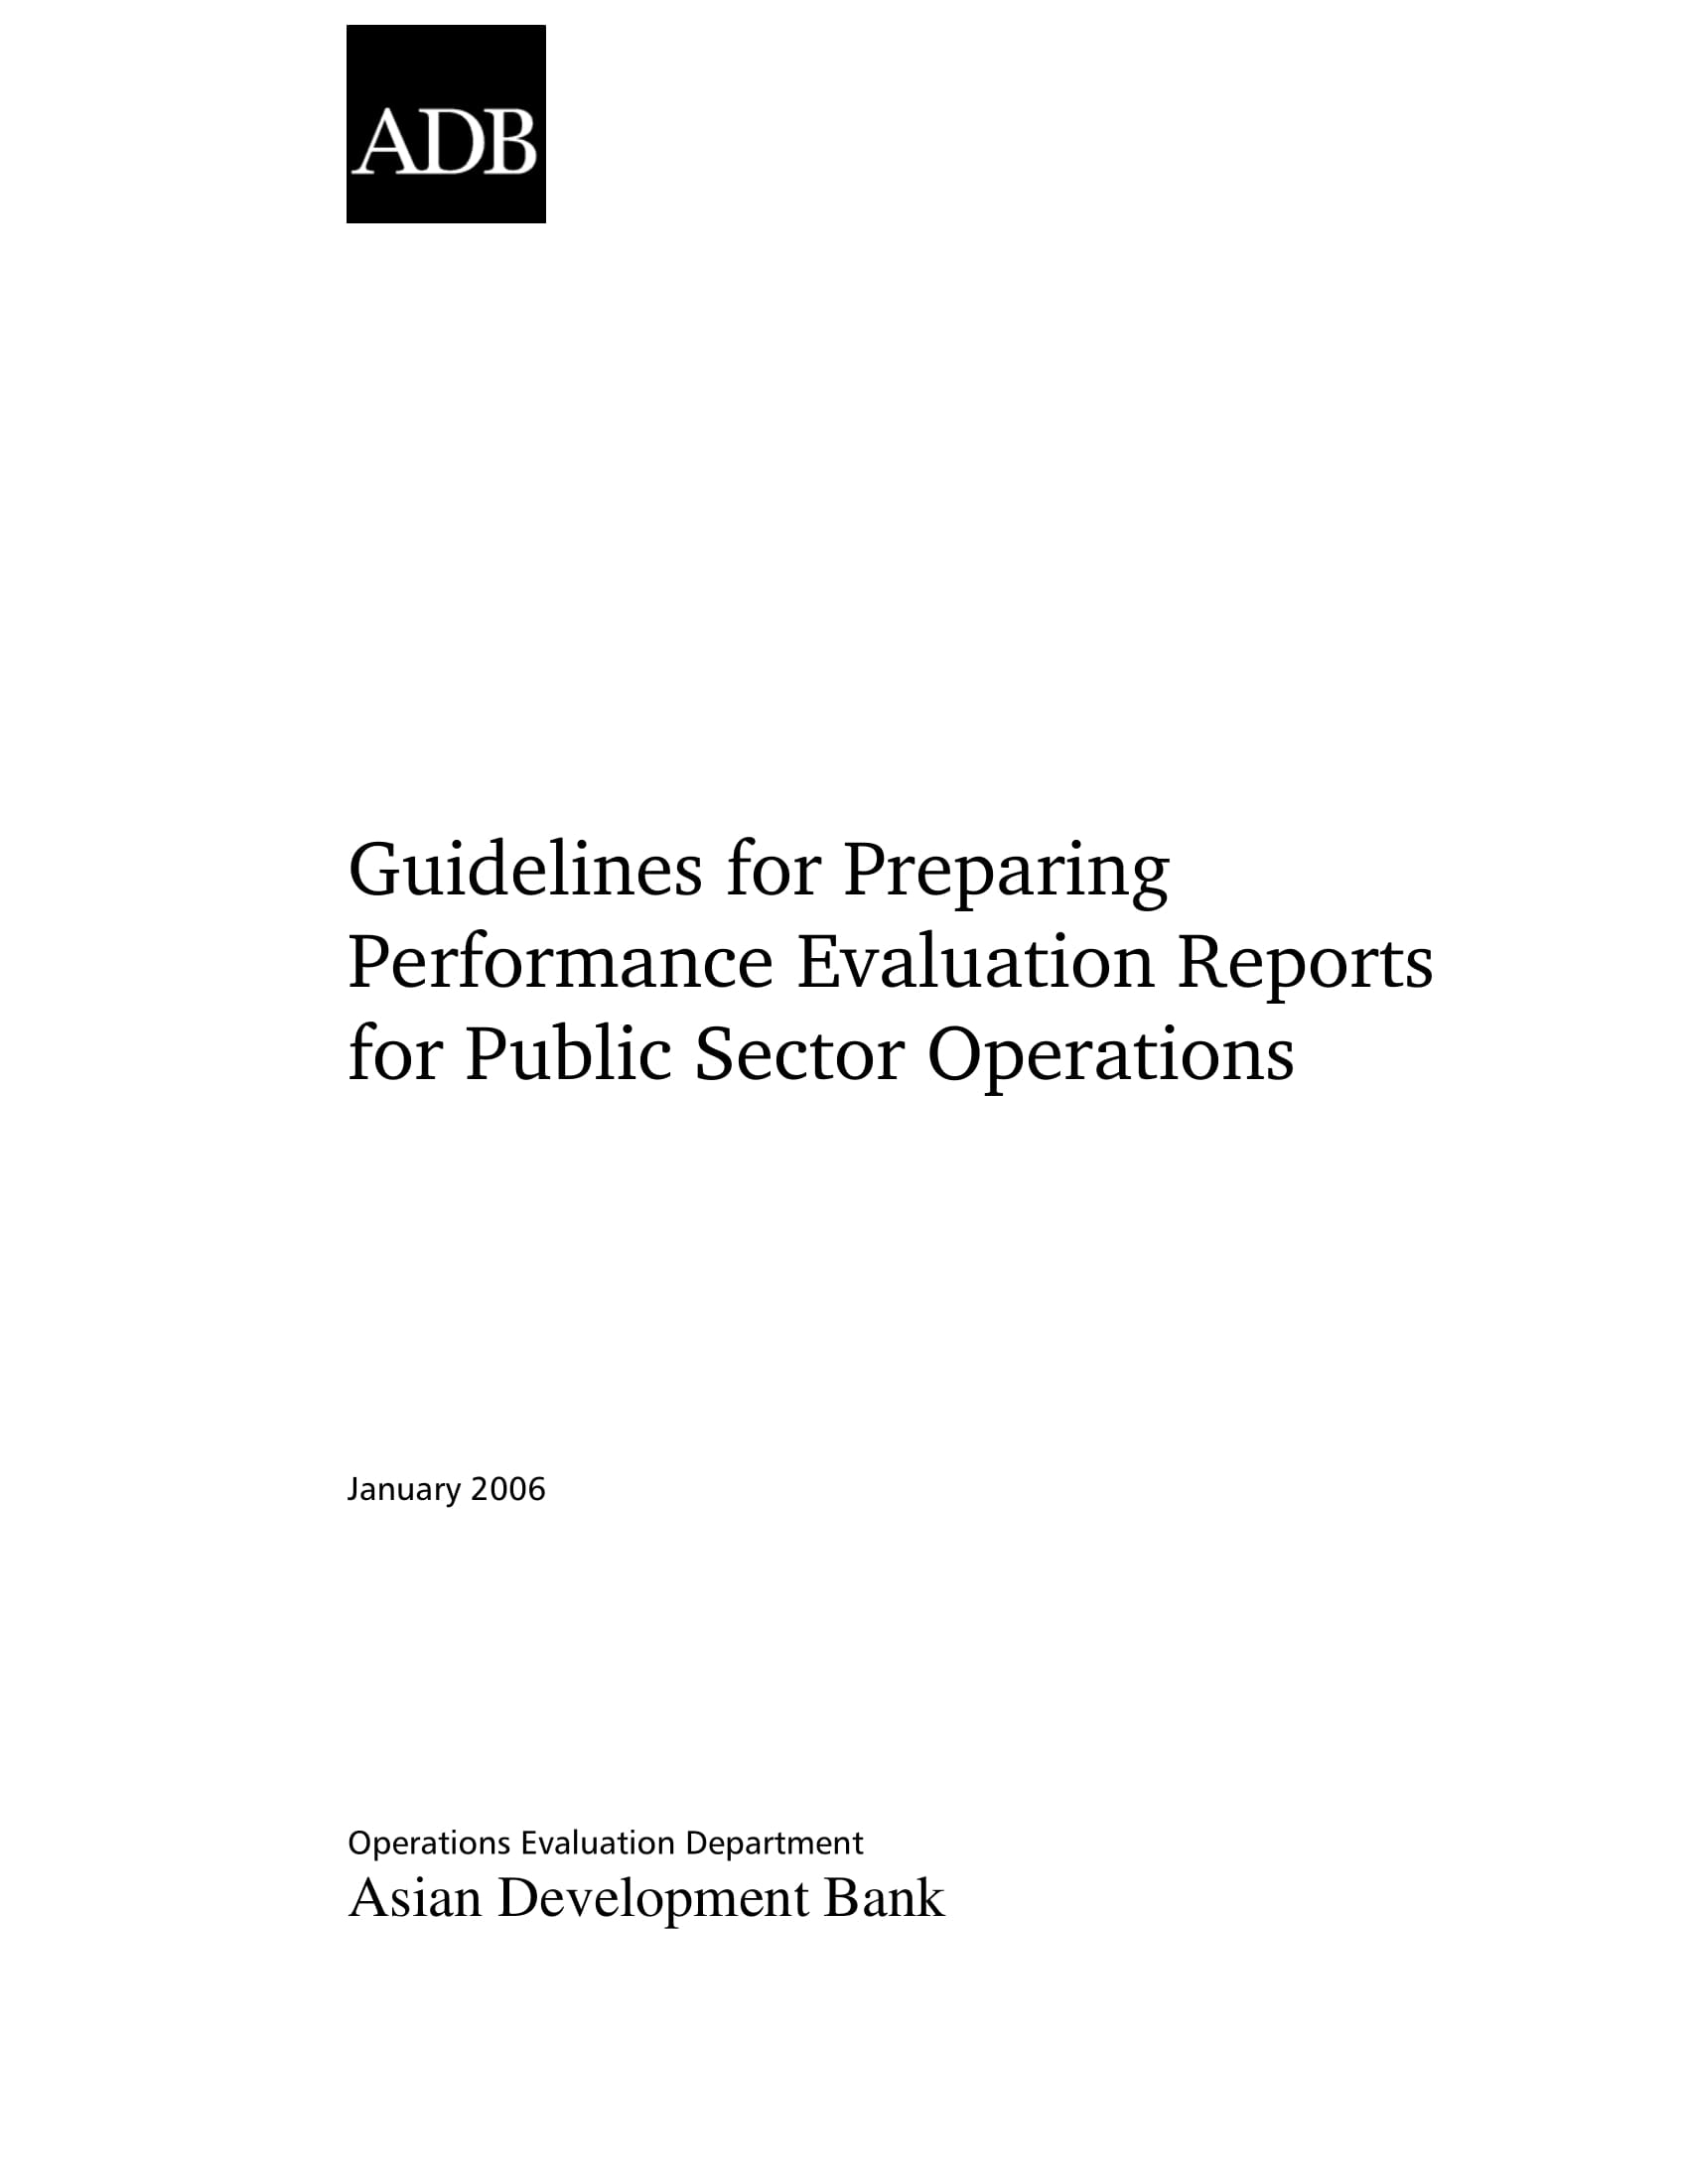 performance evaluation reports for public sector operations preparation guidelines example 01